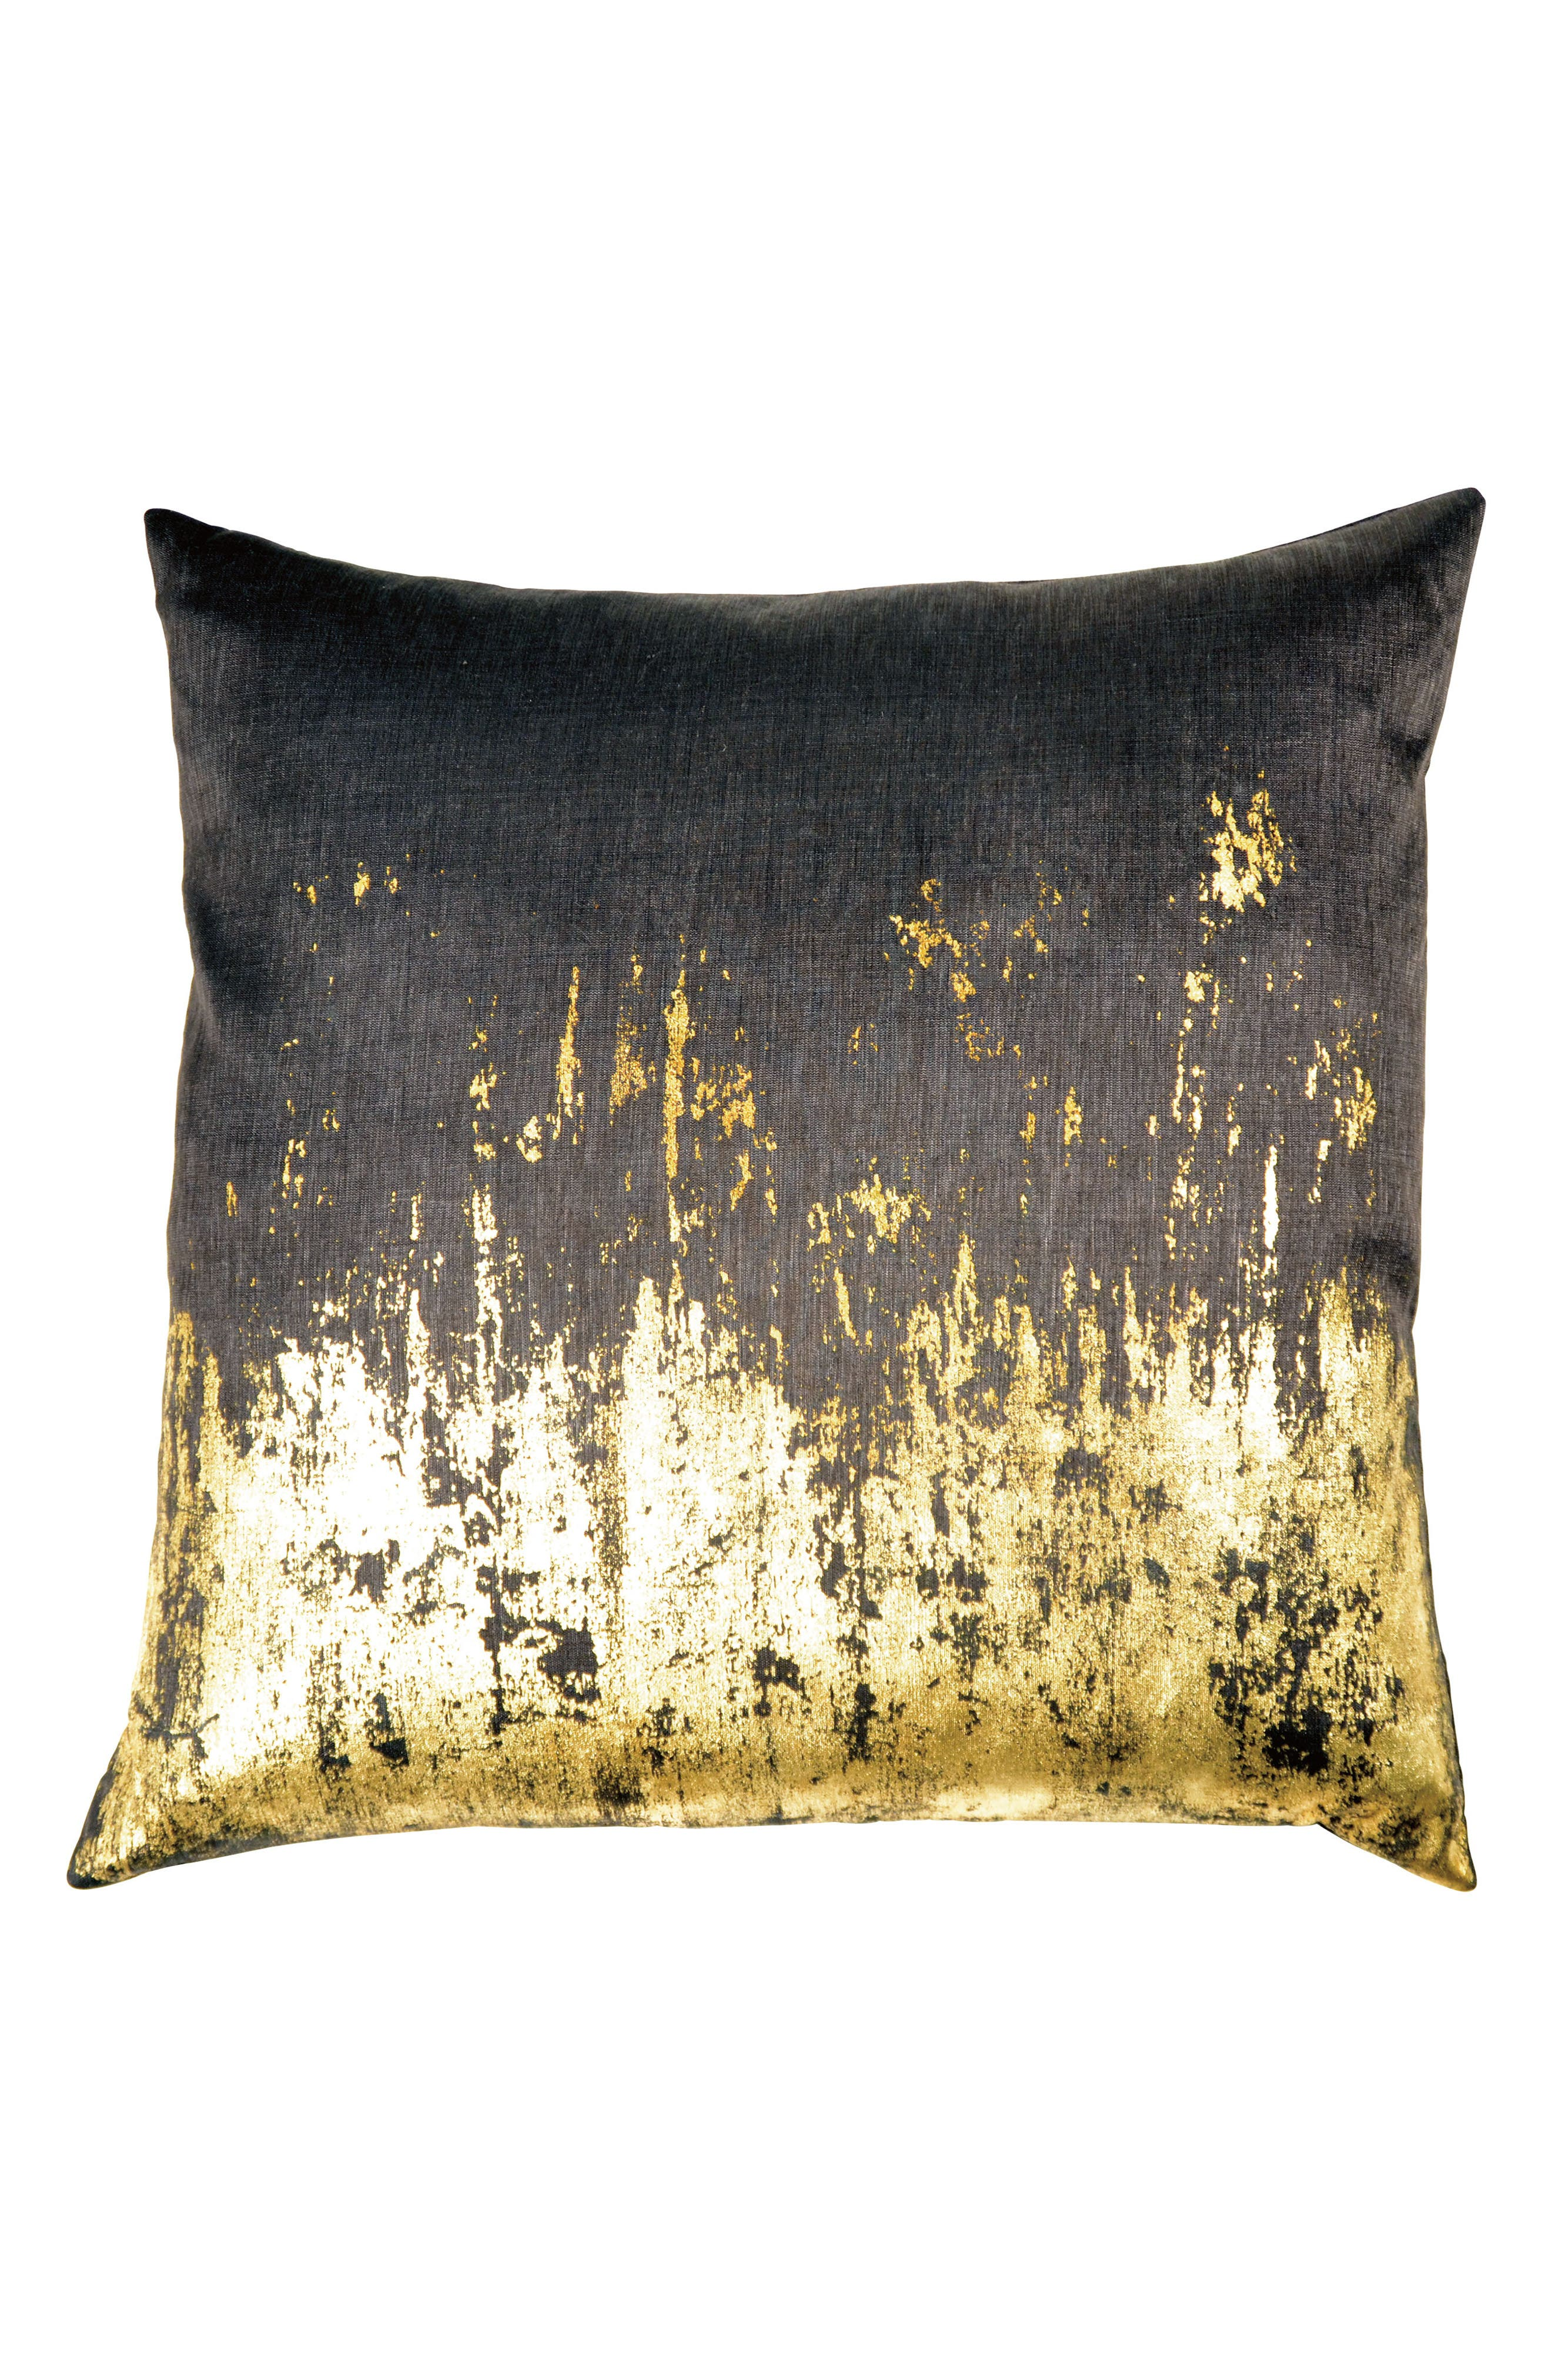 Distressed Metallic Accent Pillow,                             Main thumbnail 1, color,                             Chocolate